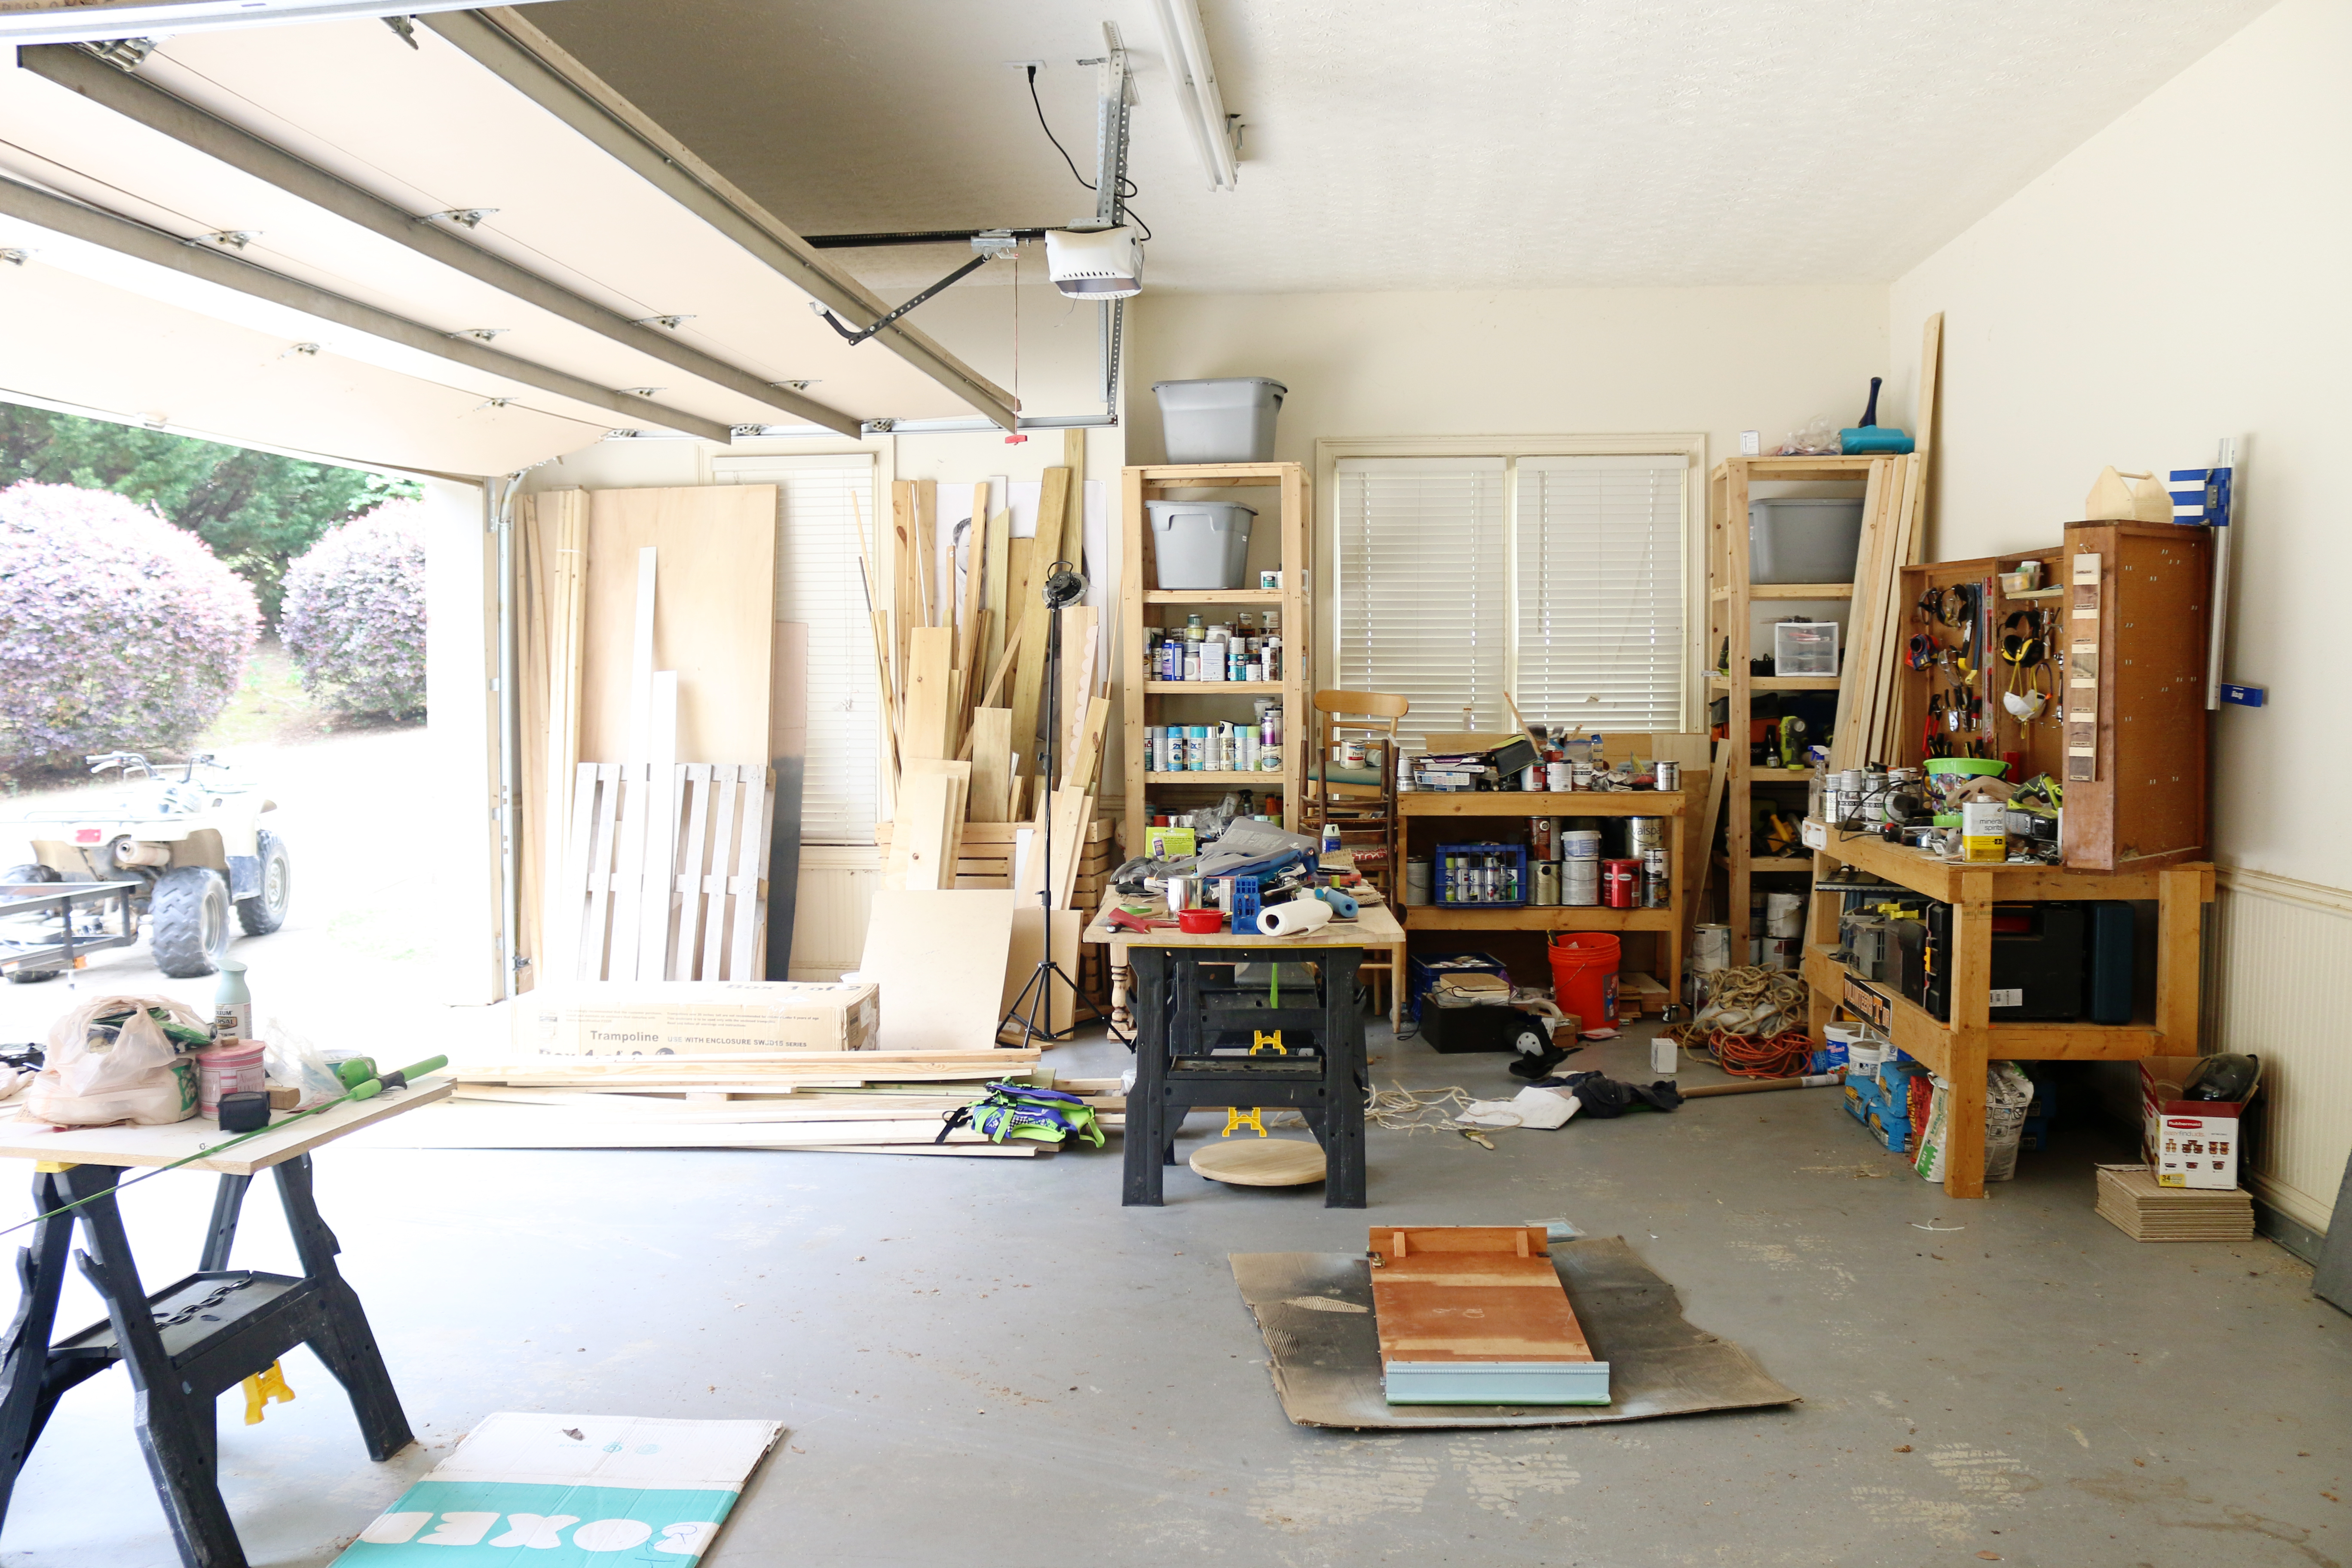 Home Interior Design Plans Garage Workshop Amp Gym The Reveal